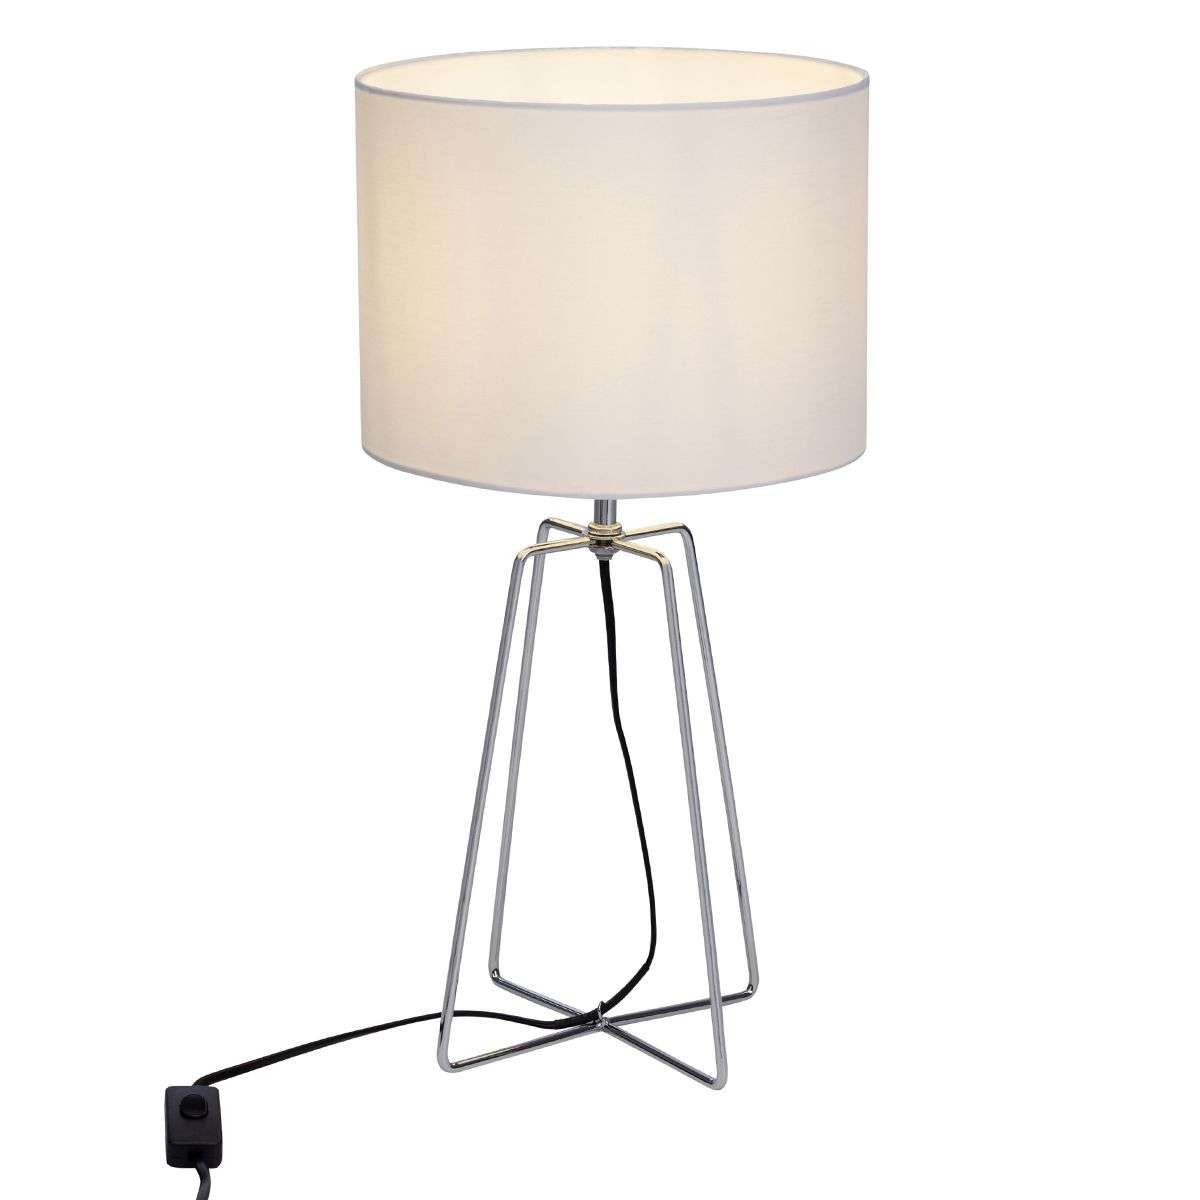 Pretty table lamp grigory white fabric lampshade lights pretty table lamp grigory white fabric lampshade 1509216 31 aloadofball Image collections